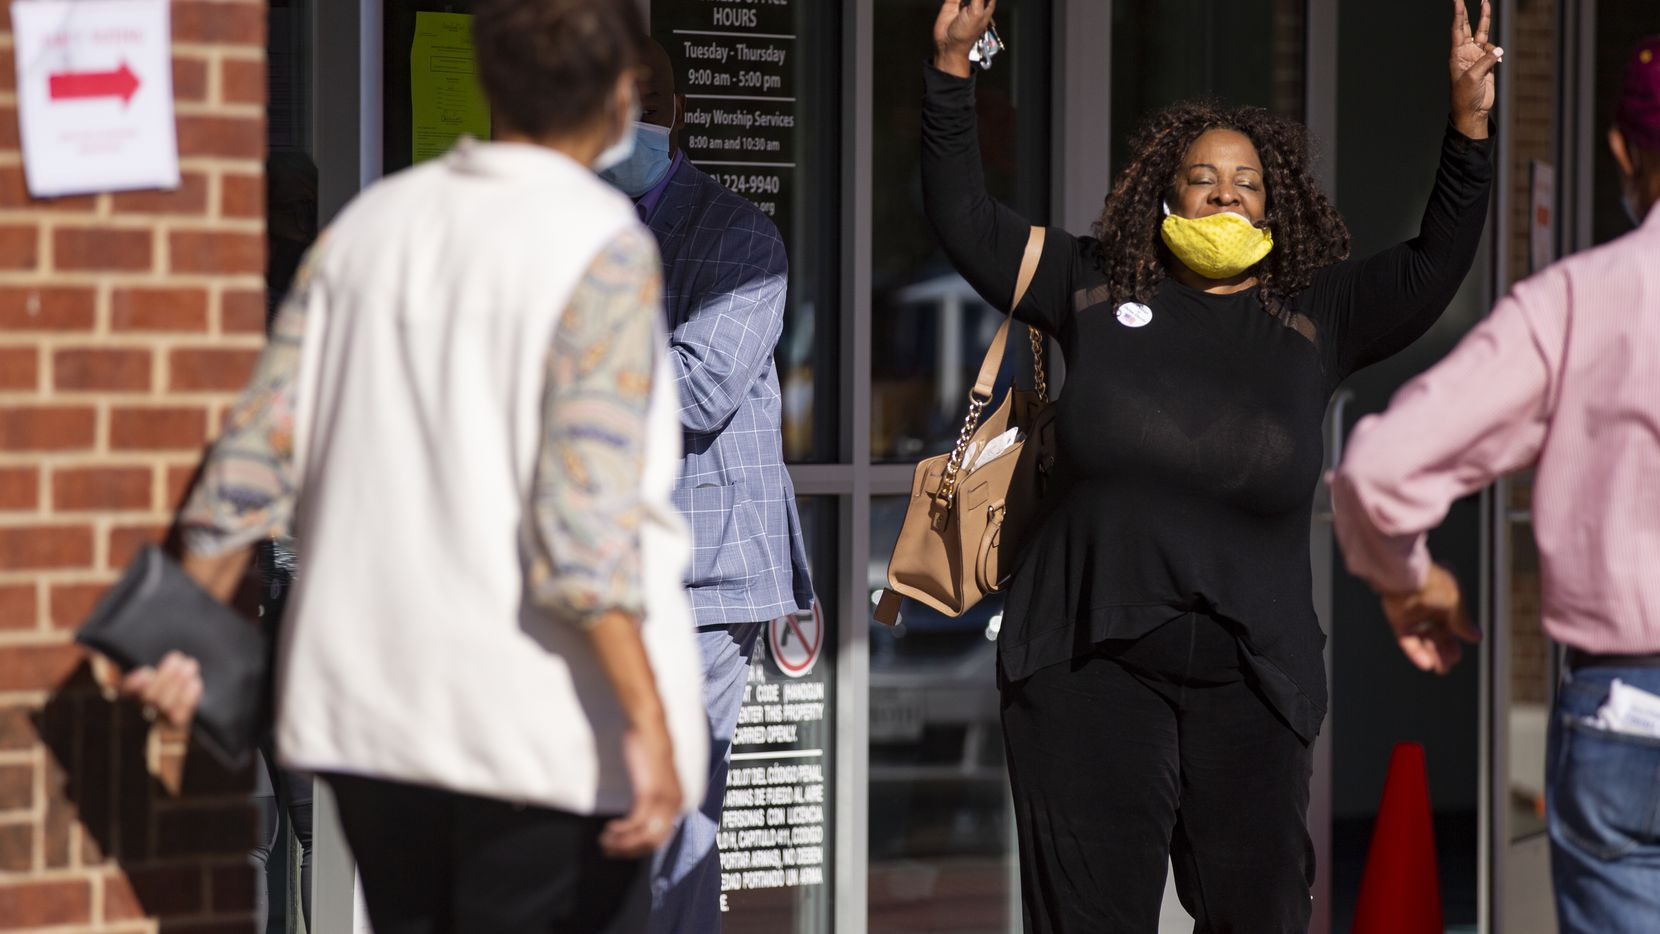 """Jacqueline Johnson celebrates after voting at Disciple Central Community Church in DeSoto on Oct. 13, 2020. Johnson waited two and a half hours to vote. """"We all ought to be out here,"""" Johnson said. """"I'm retired but I'm determined."""""""